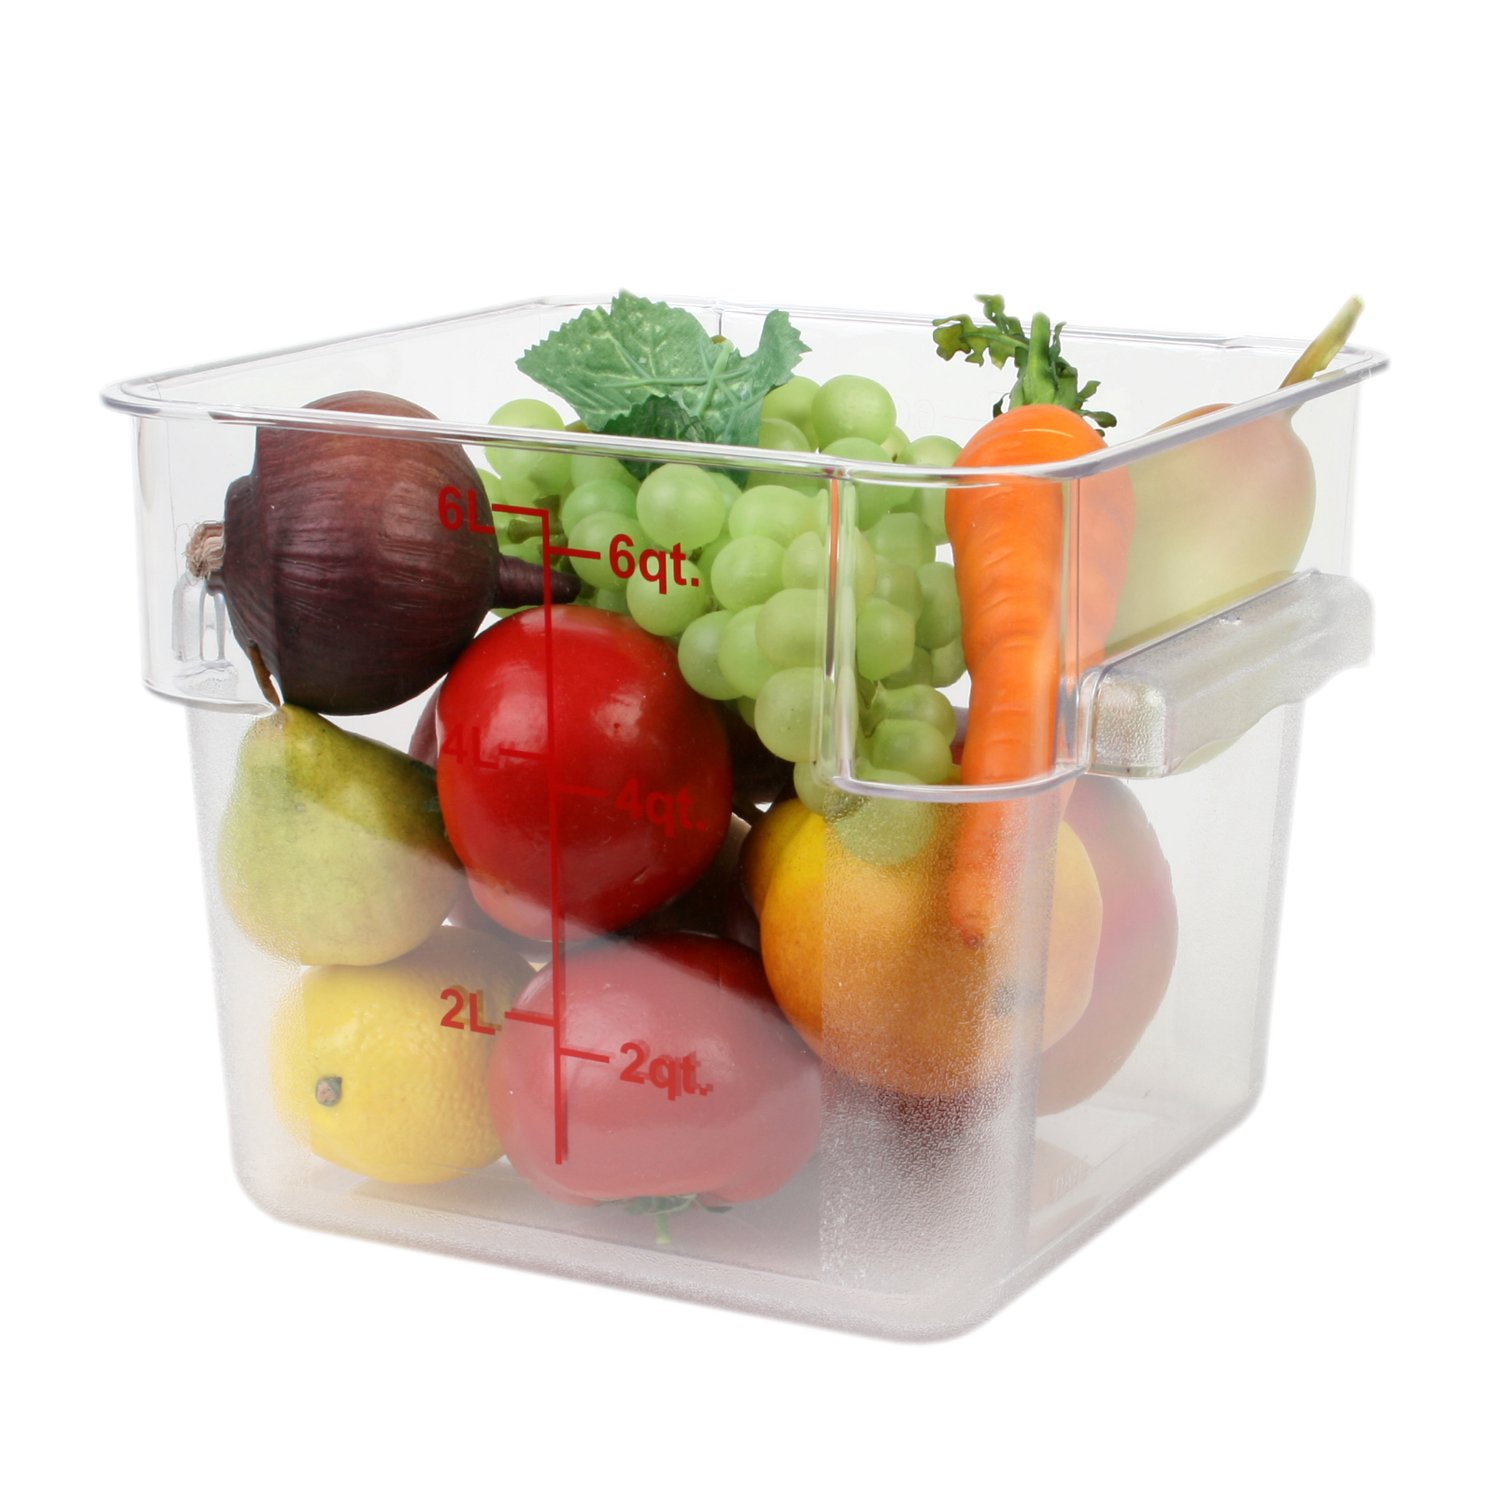 Excellante 6-Quart Polycarbonate Square Food Storage Containers, Clear by Excellant (Image #2)